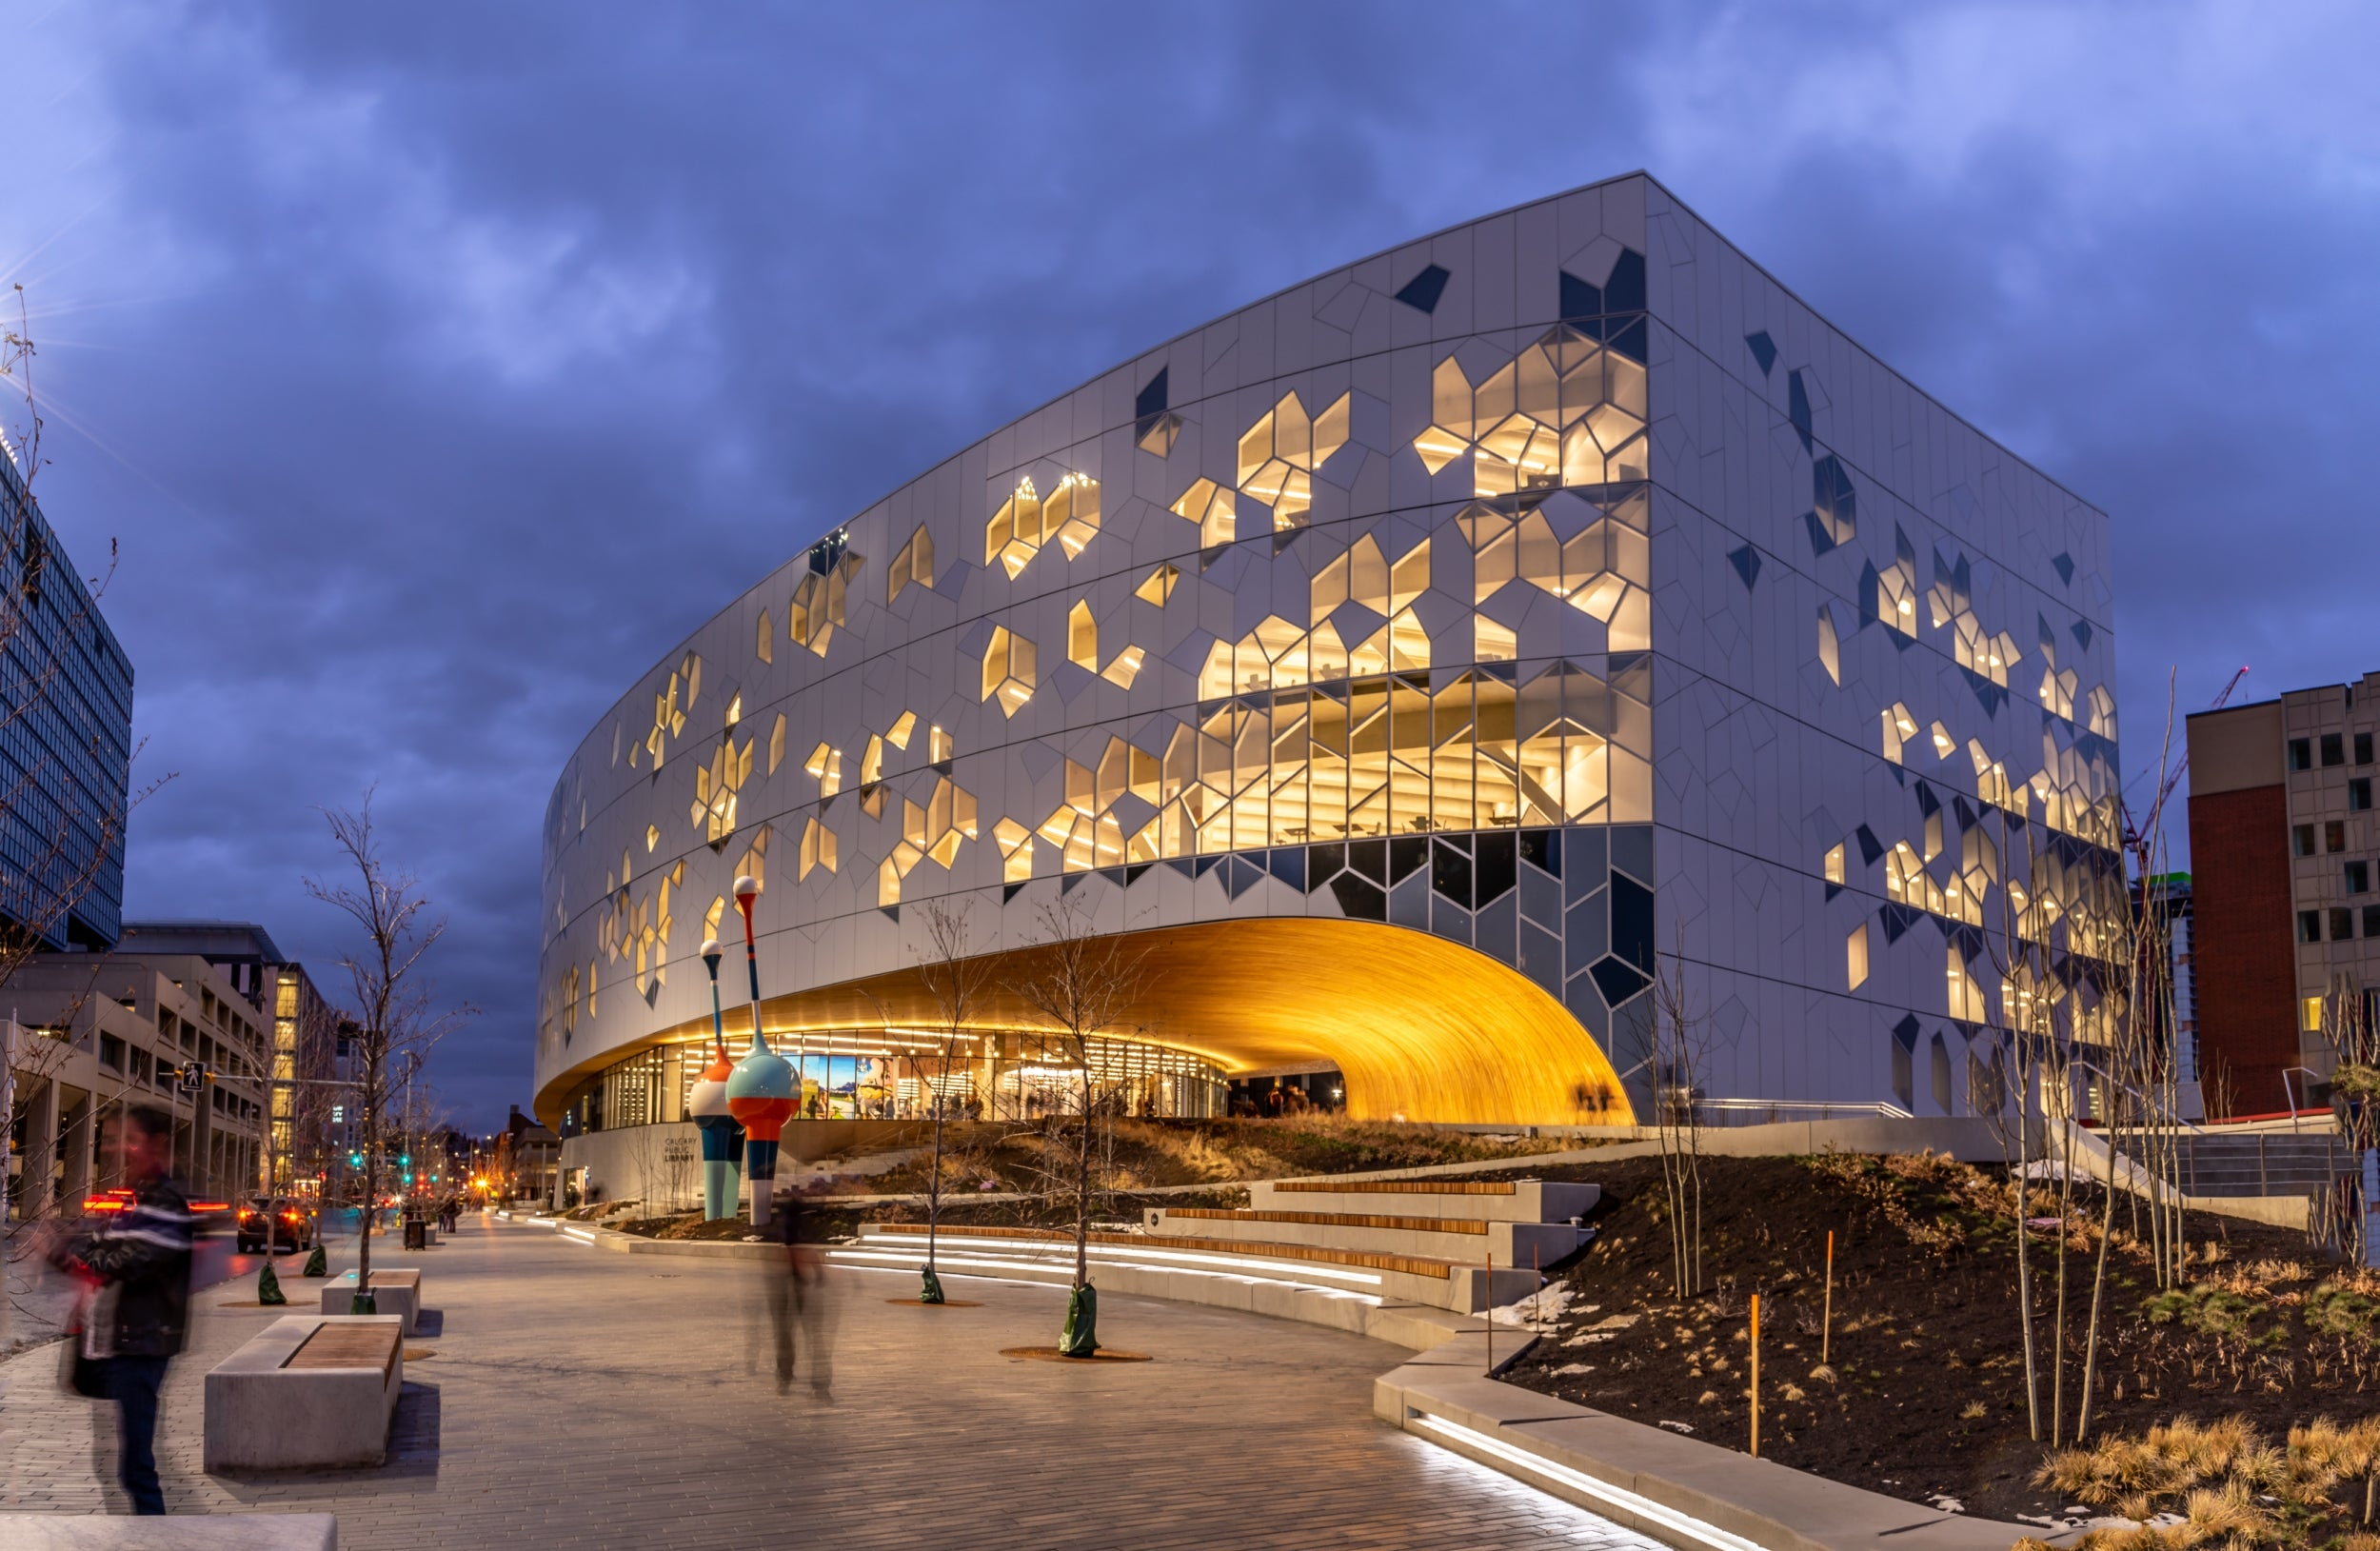 Calgary, Alberta: A spectacular library adds to a once-neglected neighbourhood